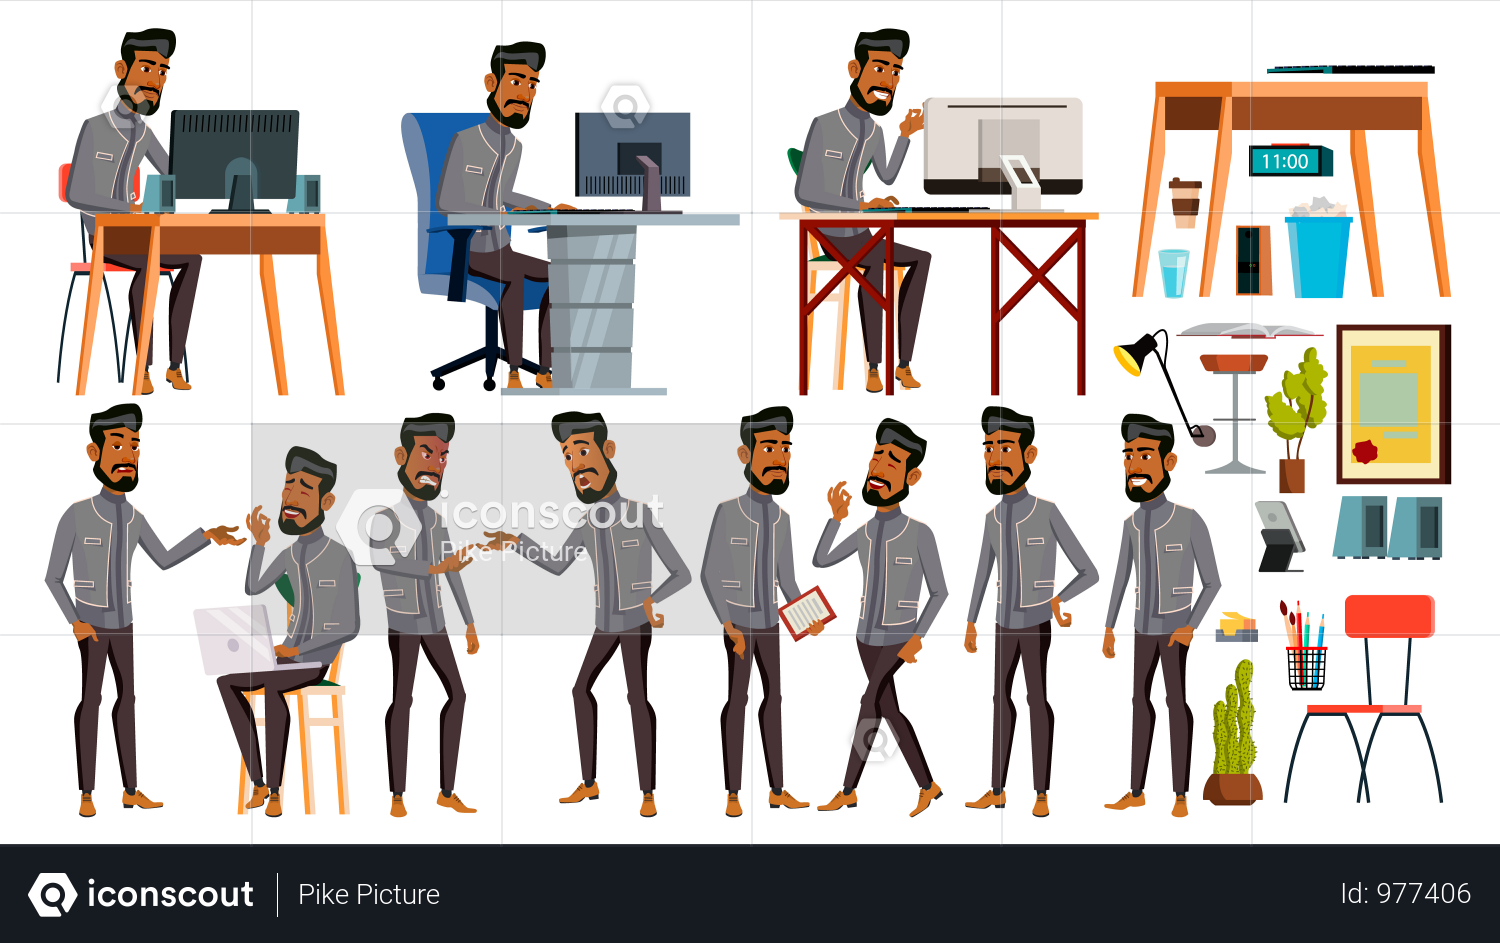 Premium Office Employee Working In Office With Working Gesture Illustration Download In Png Vector Format Man Office Business Stock Images Arab Men